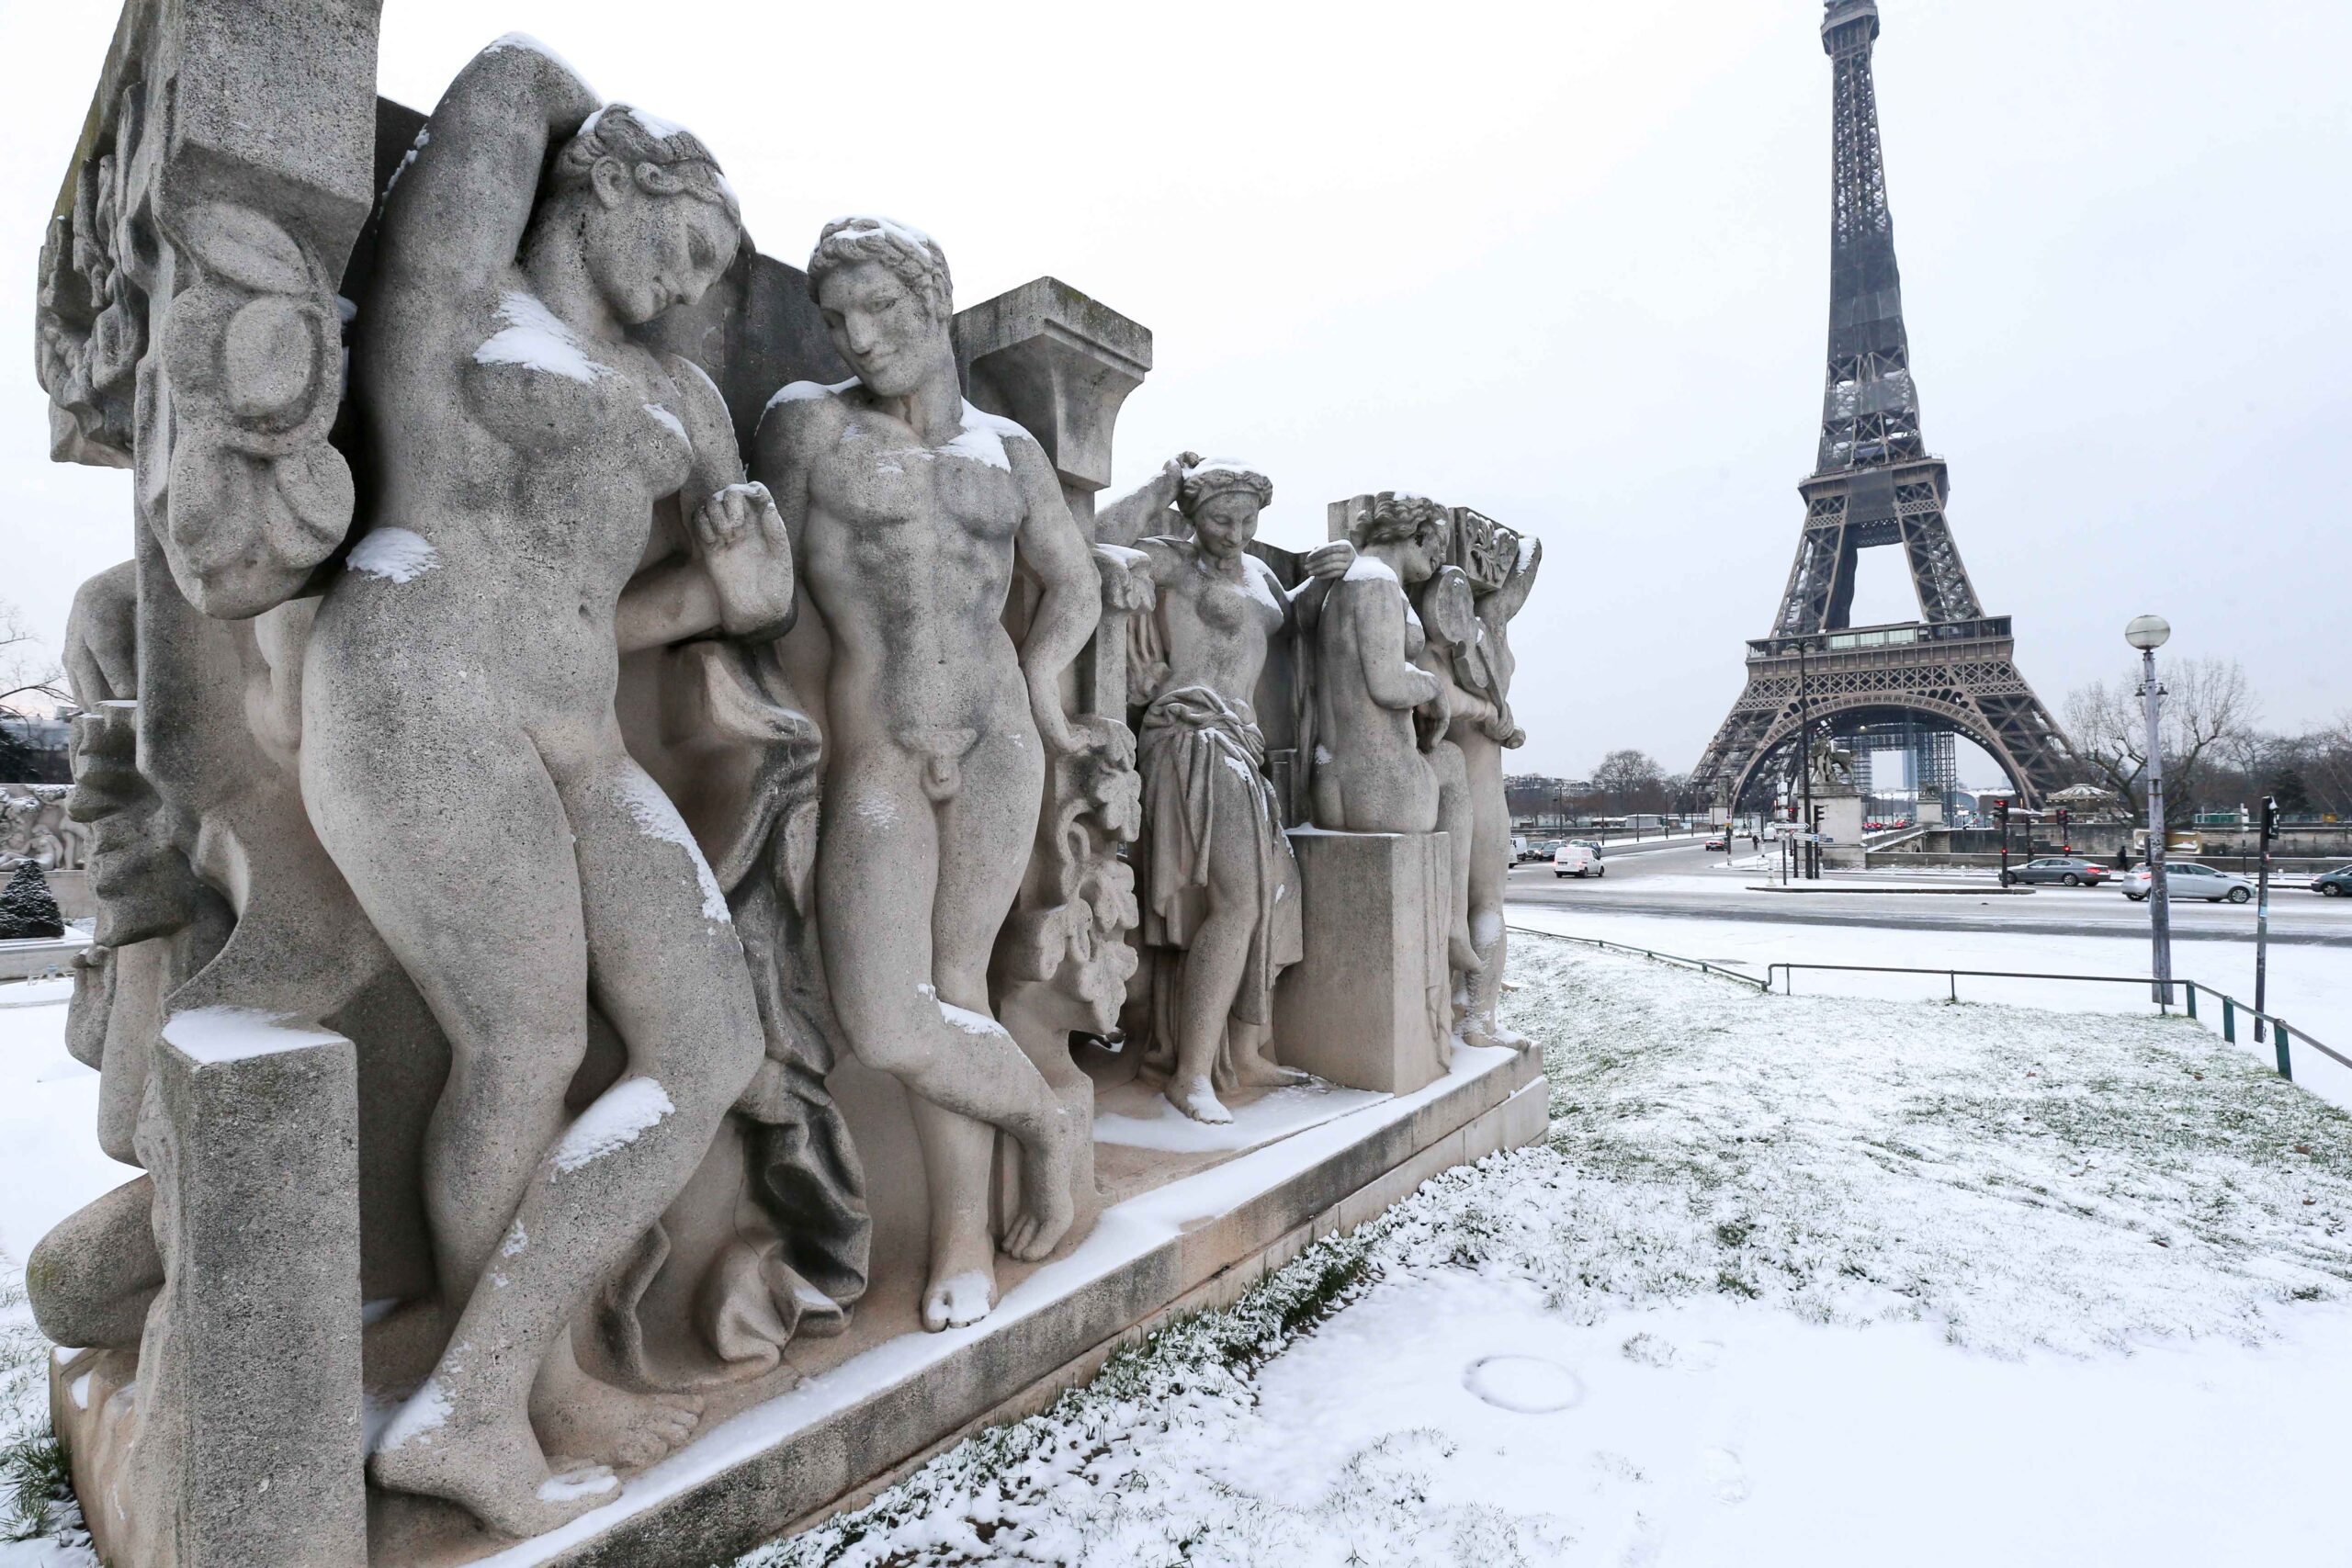 The Trocadero gardens, in front of the Eiffel Tower, in Paris, are covered in snow on February 10, 2021, following an overnight snowfall. In parts of the Paris region authorities cancelled school buses and urged parents to keep children at home. The city o